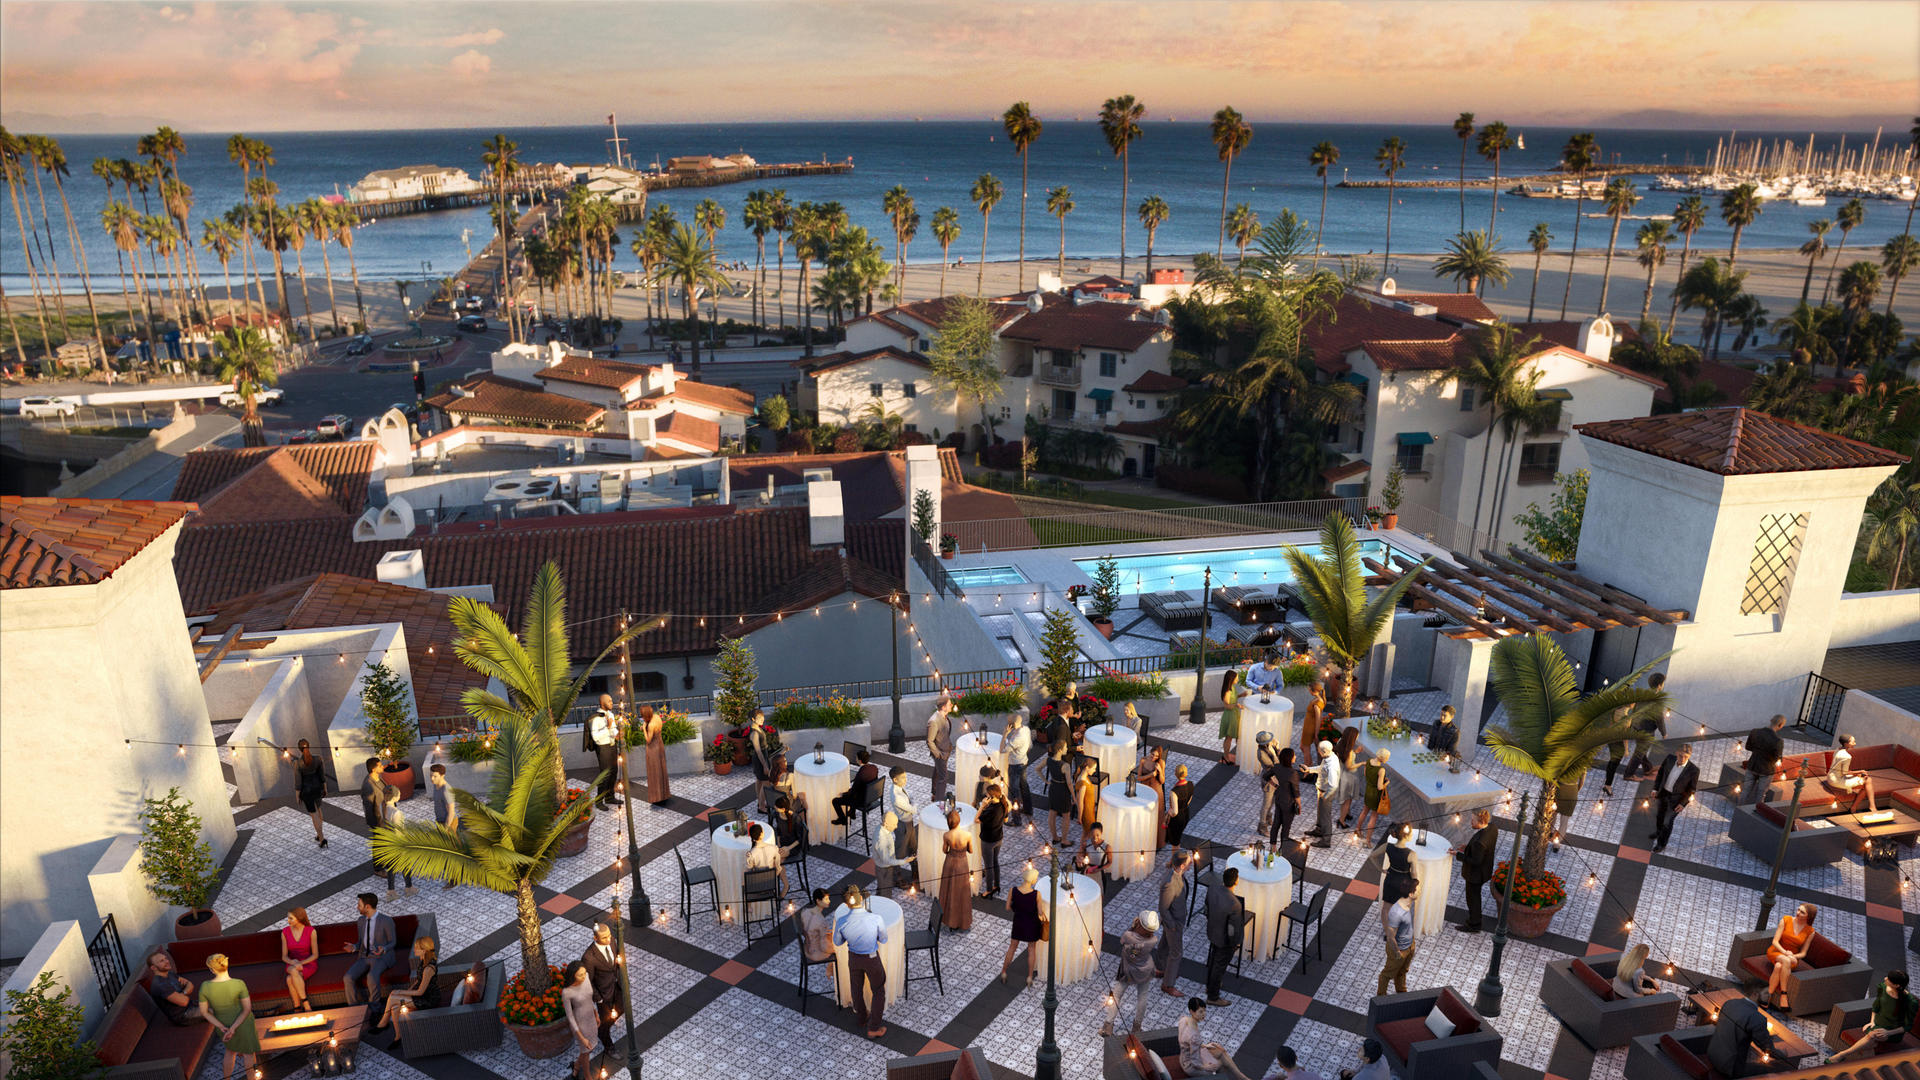 outdoor event venue with bar tables overlooking ocean